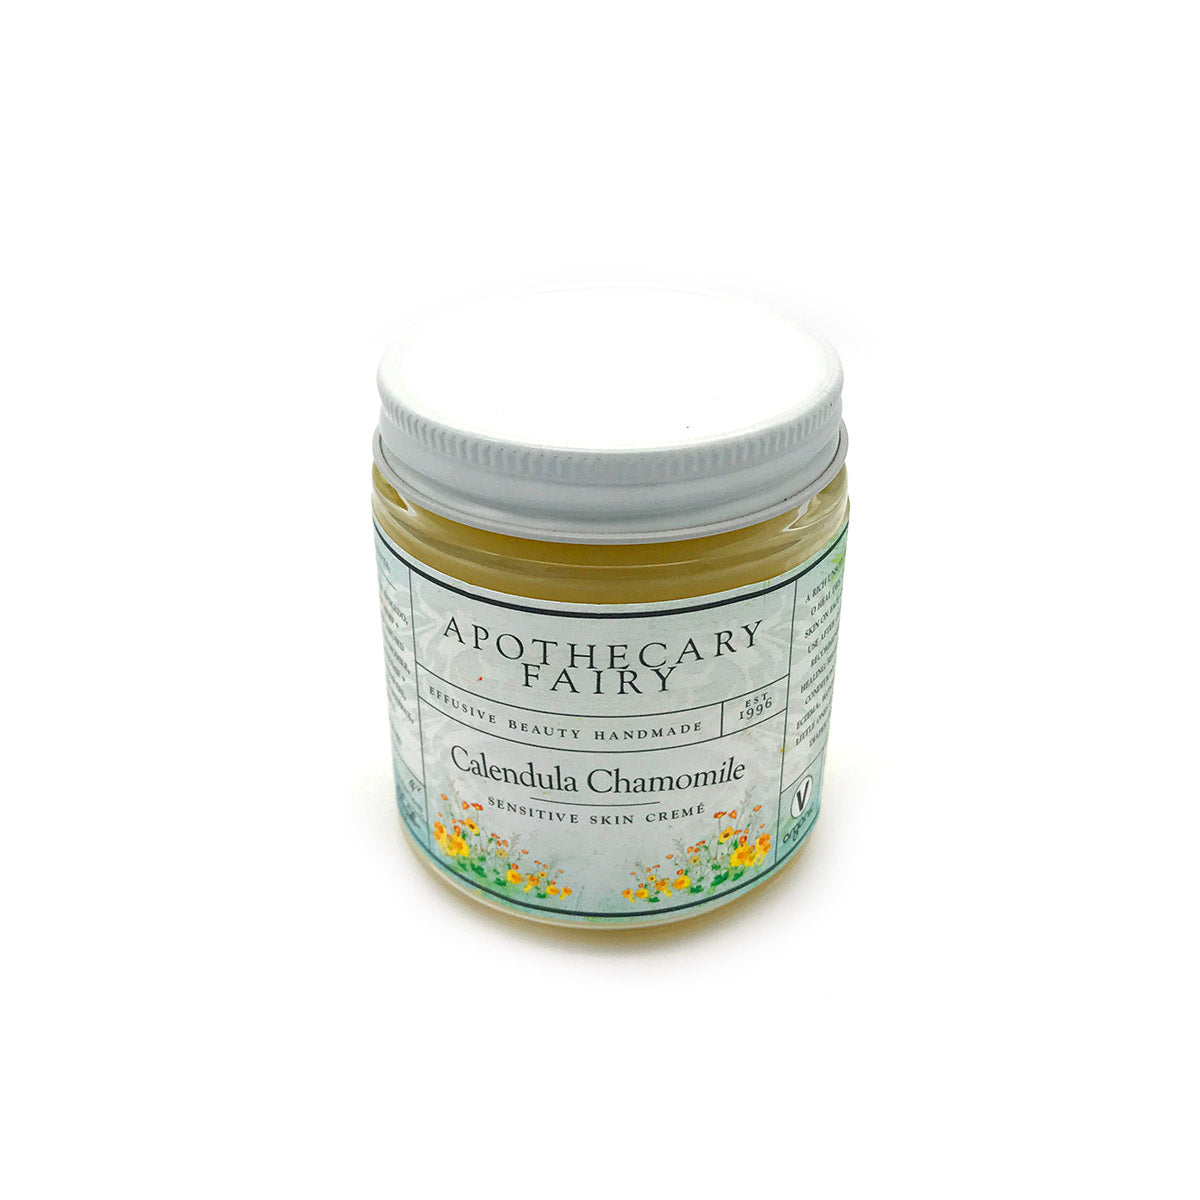 Calendula Chamomile Sensitive Skin Creme - The Apothecary Fairy